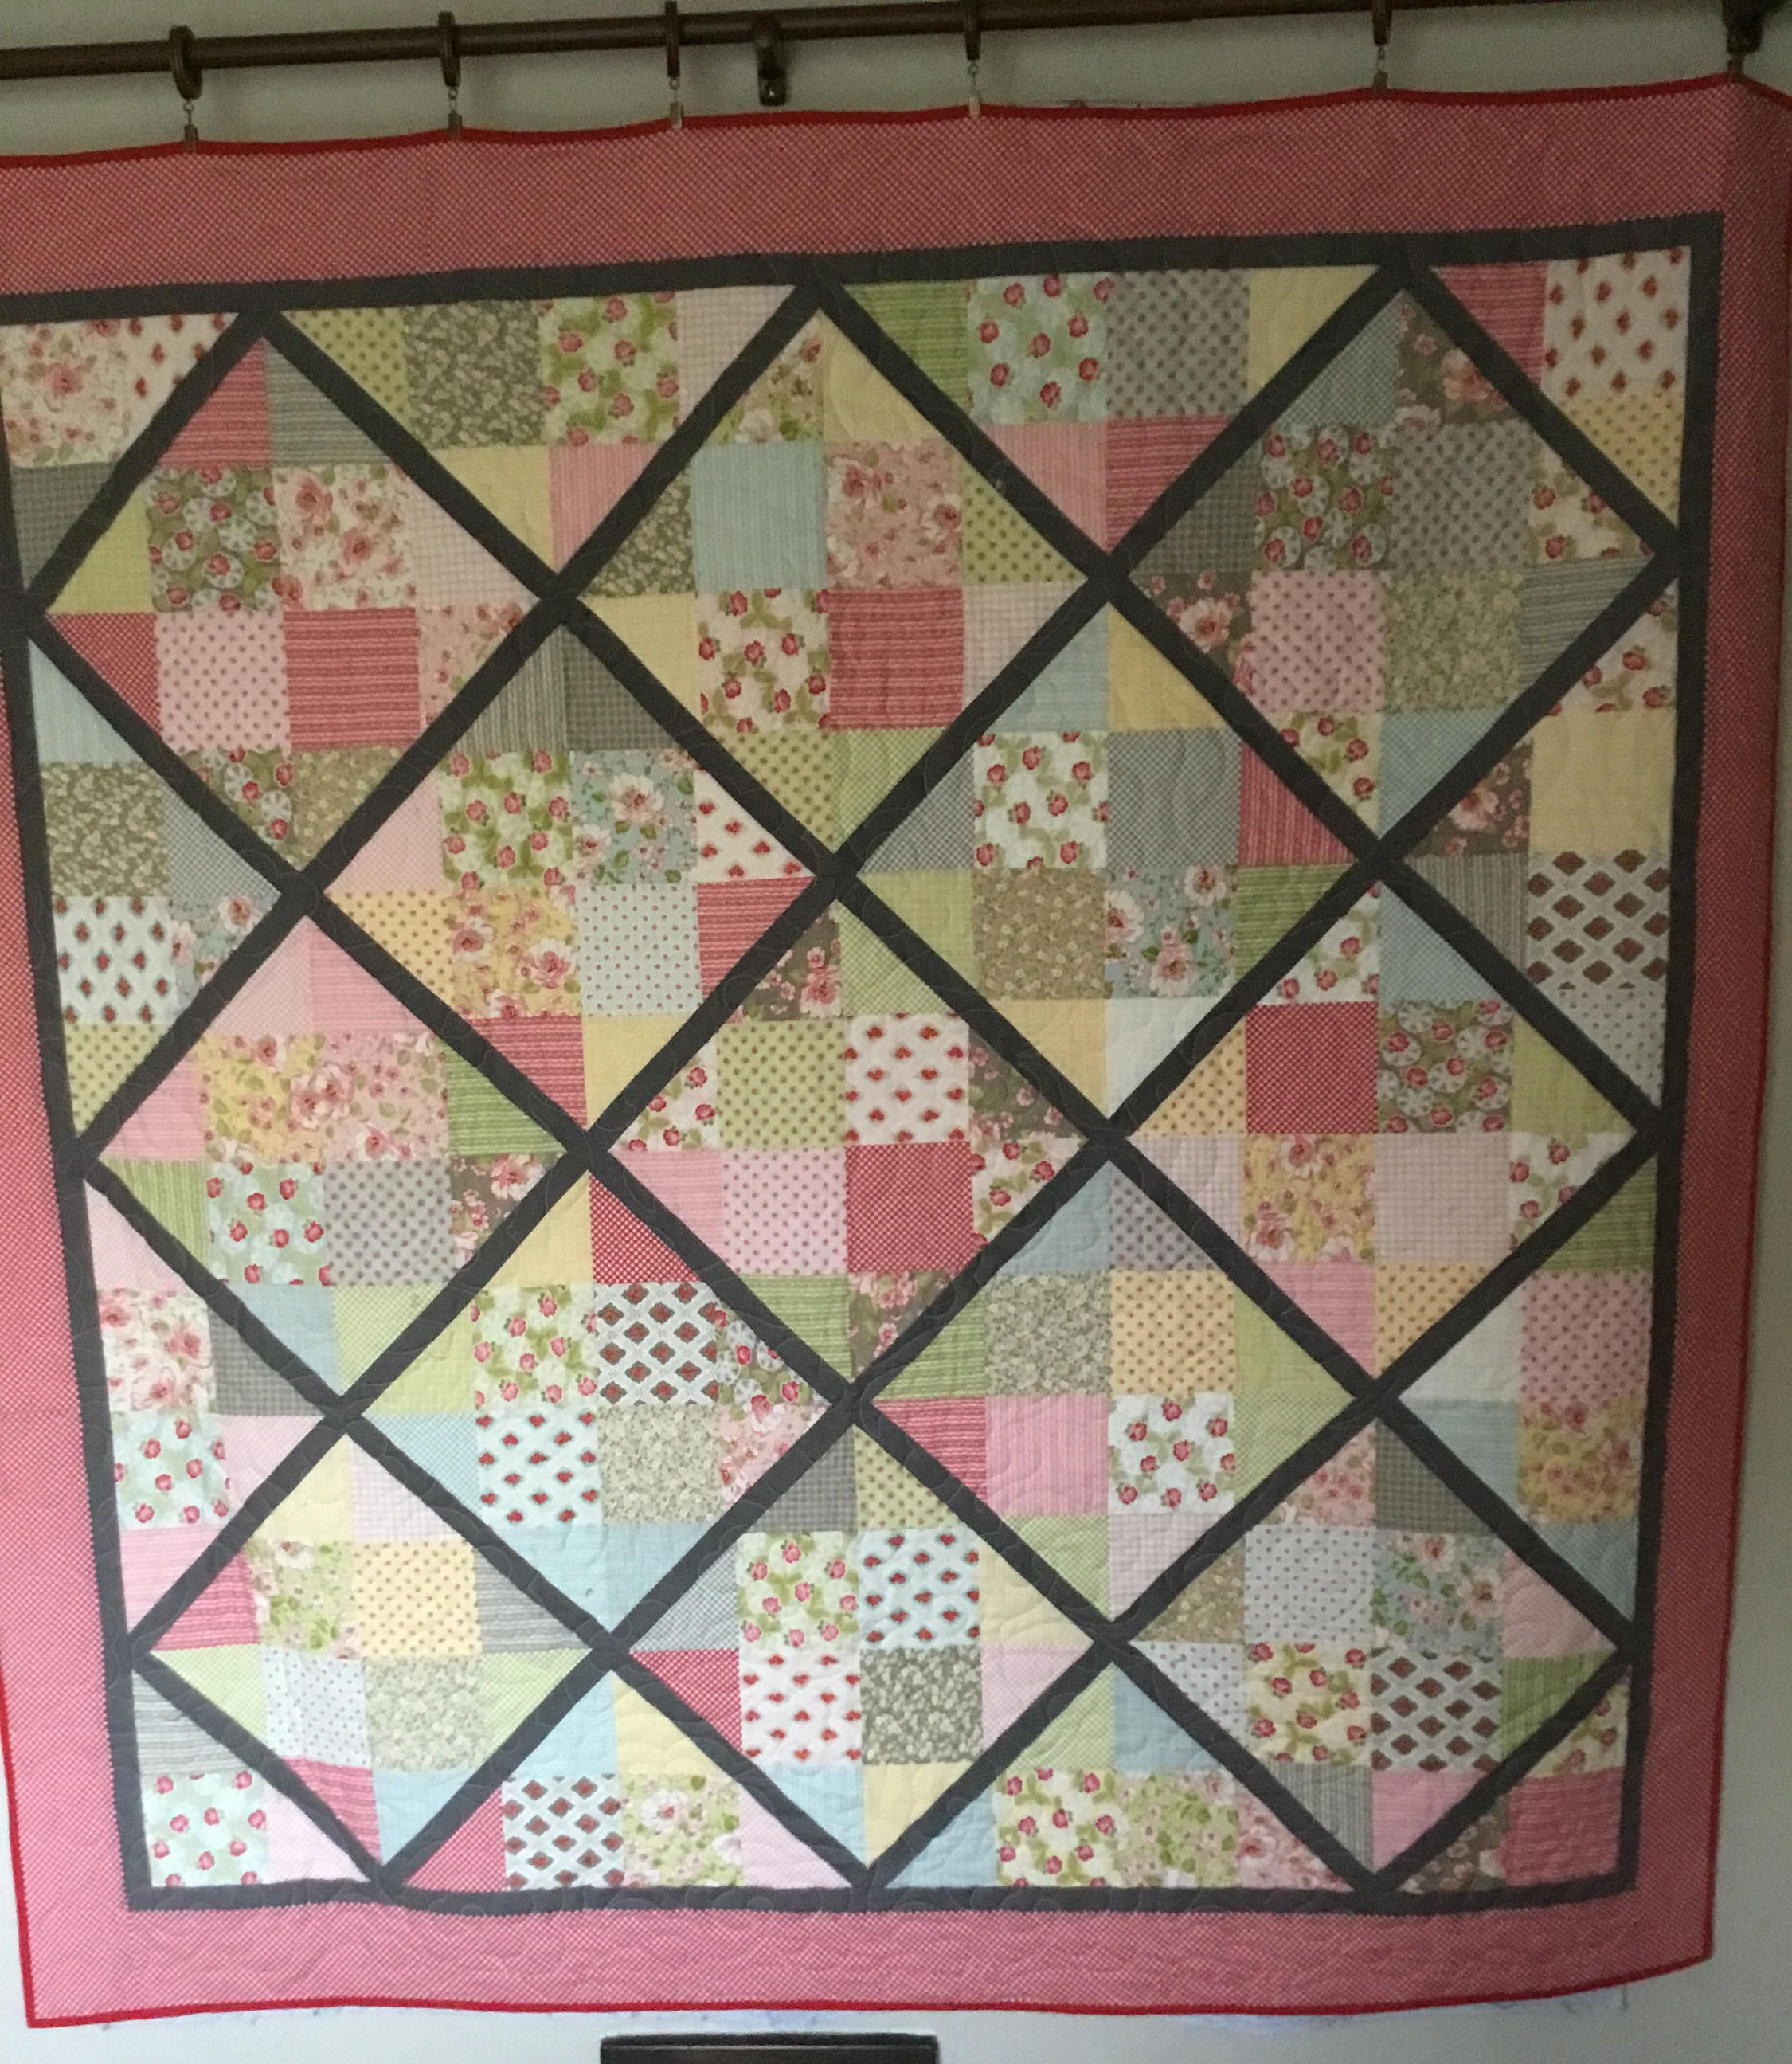 fool products homemade are themed next of sale quilt room have brownsville great for quilts valentine farm and twin size girls one both kentucky april day s many the back two these pink a